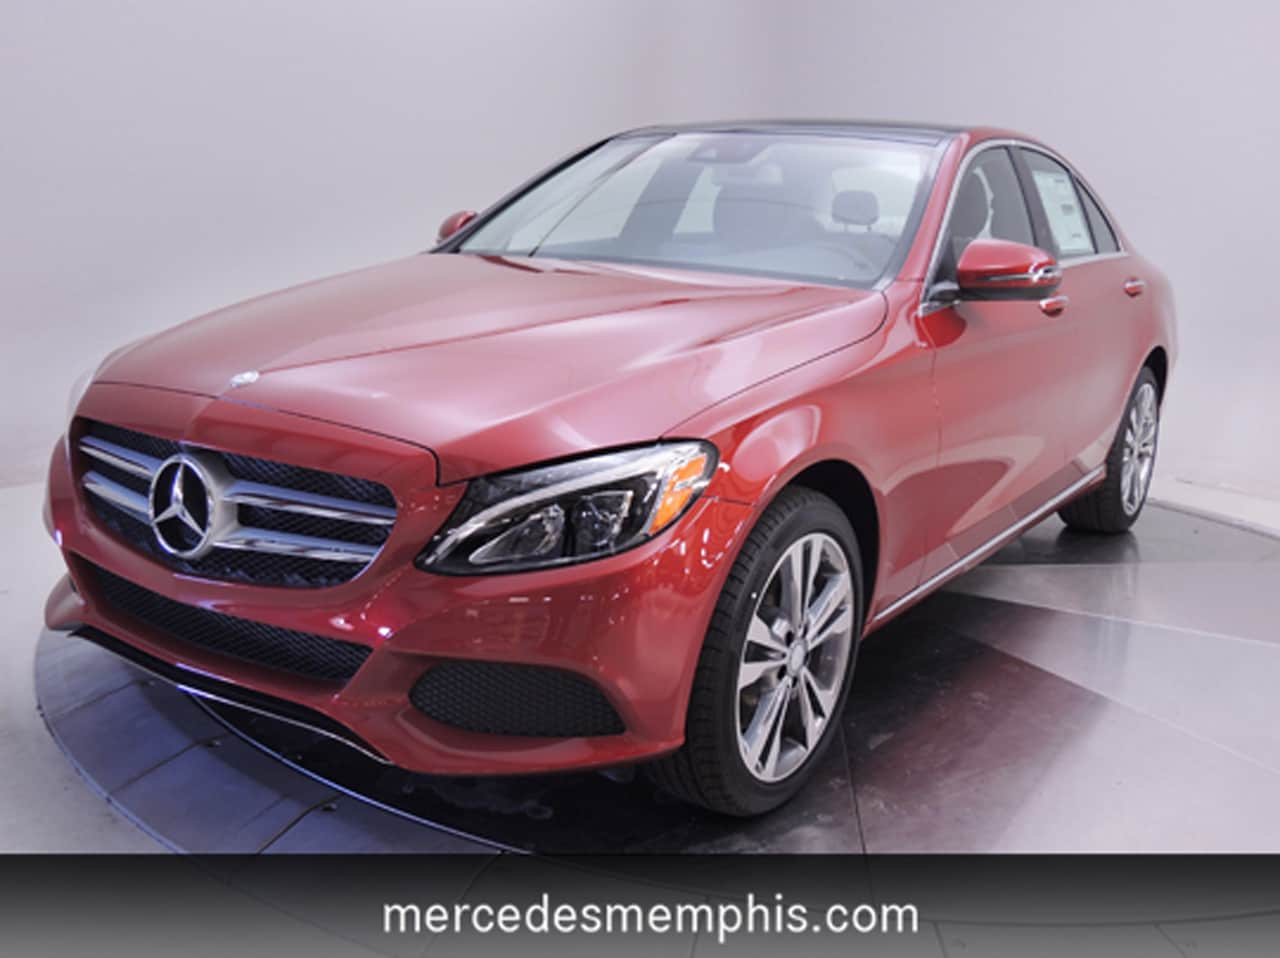 new 2016 mercedes benz c class c300 4matic for sale in memphis tn. Cars Review. Best American Auto & Cars Review